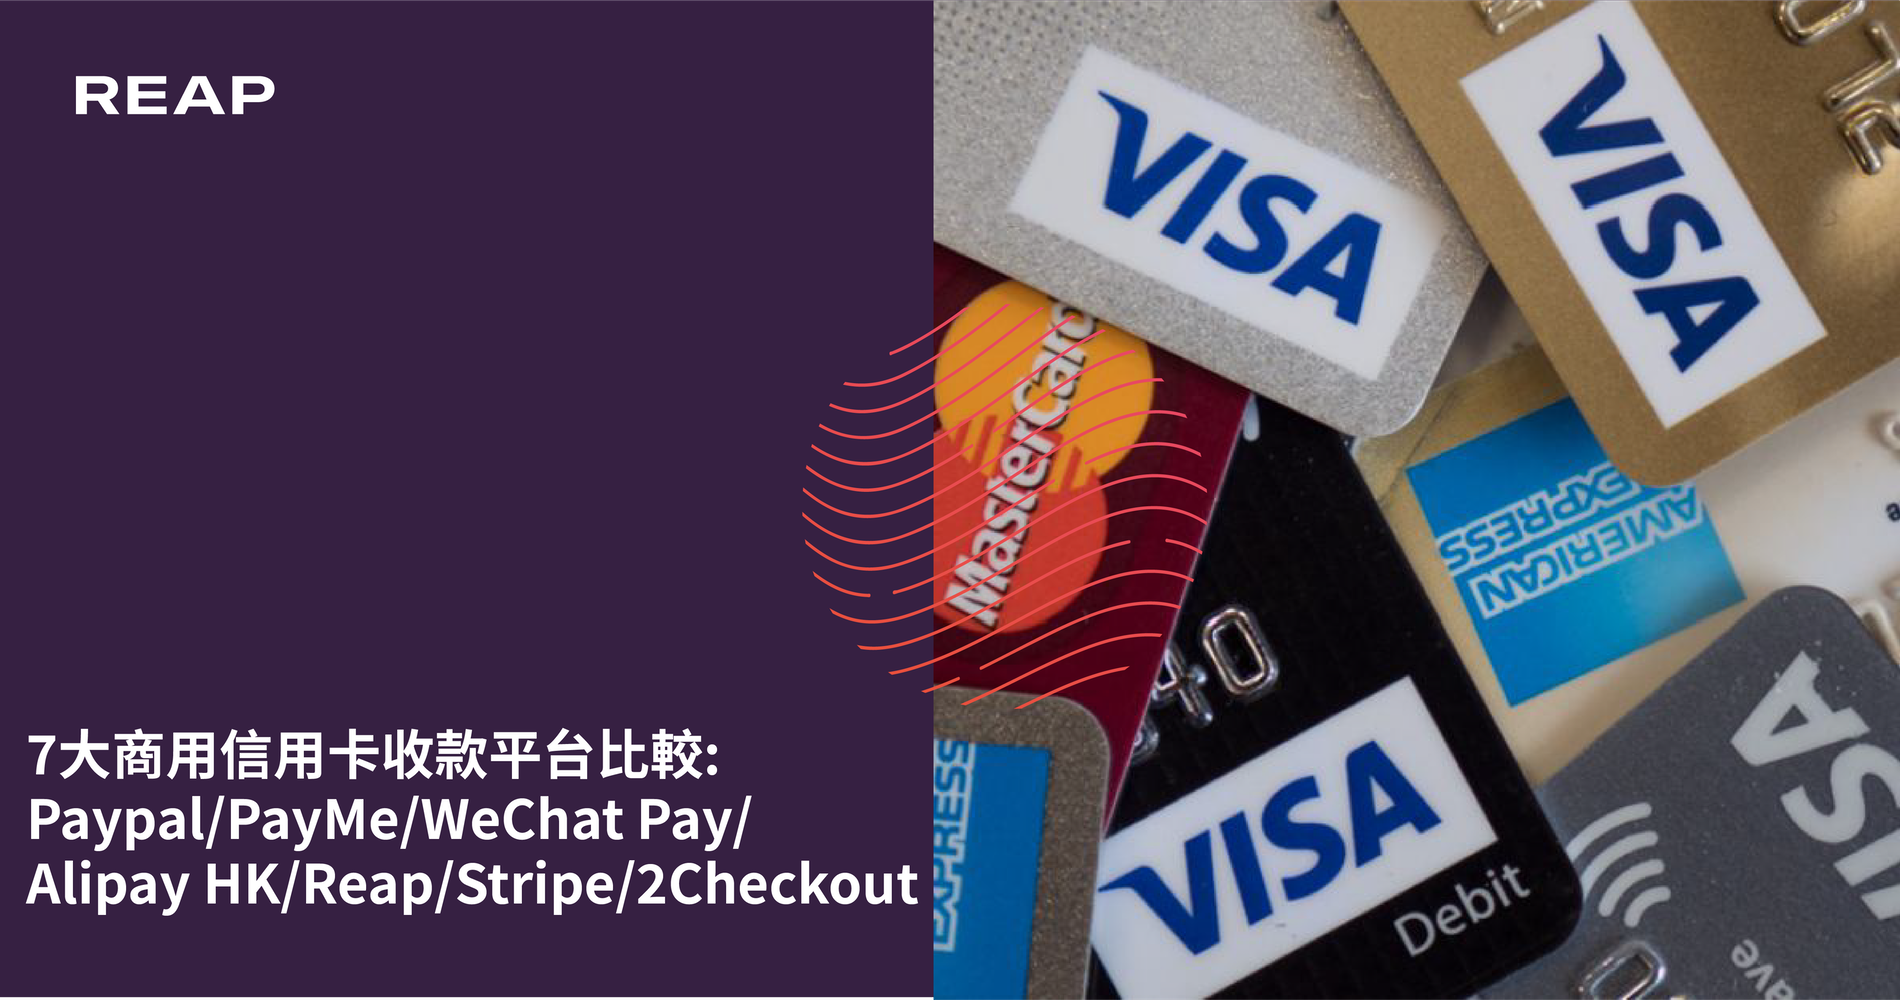 Cover Image for 7大商用信用卡收款平台比較:Paypal/PayMe/WeChat Pay/Alipay HK/Reap/Stripe/2Checkout